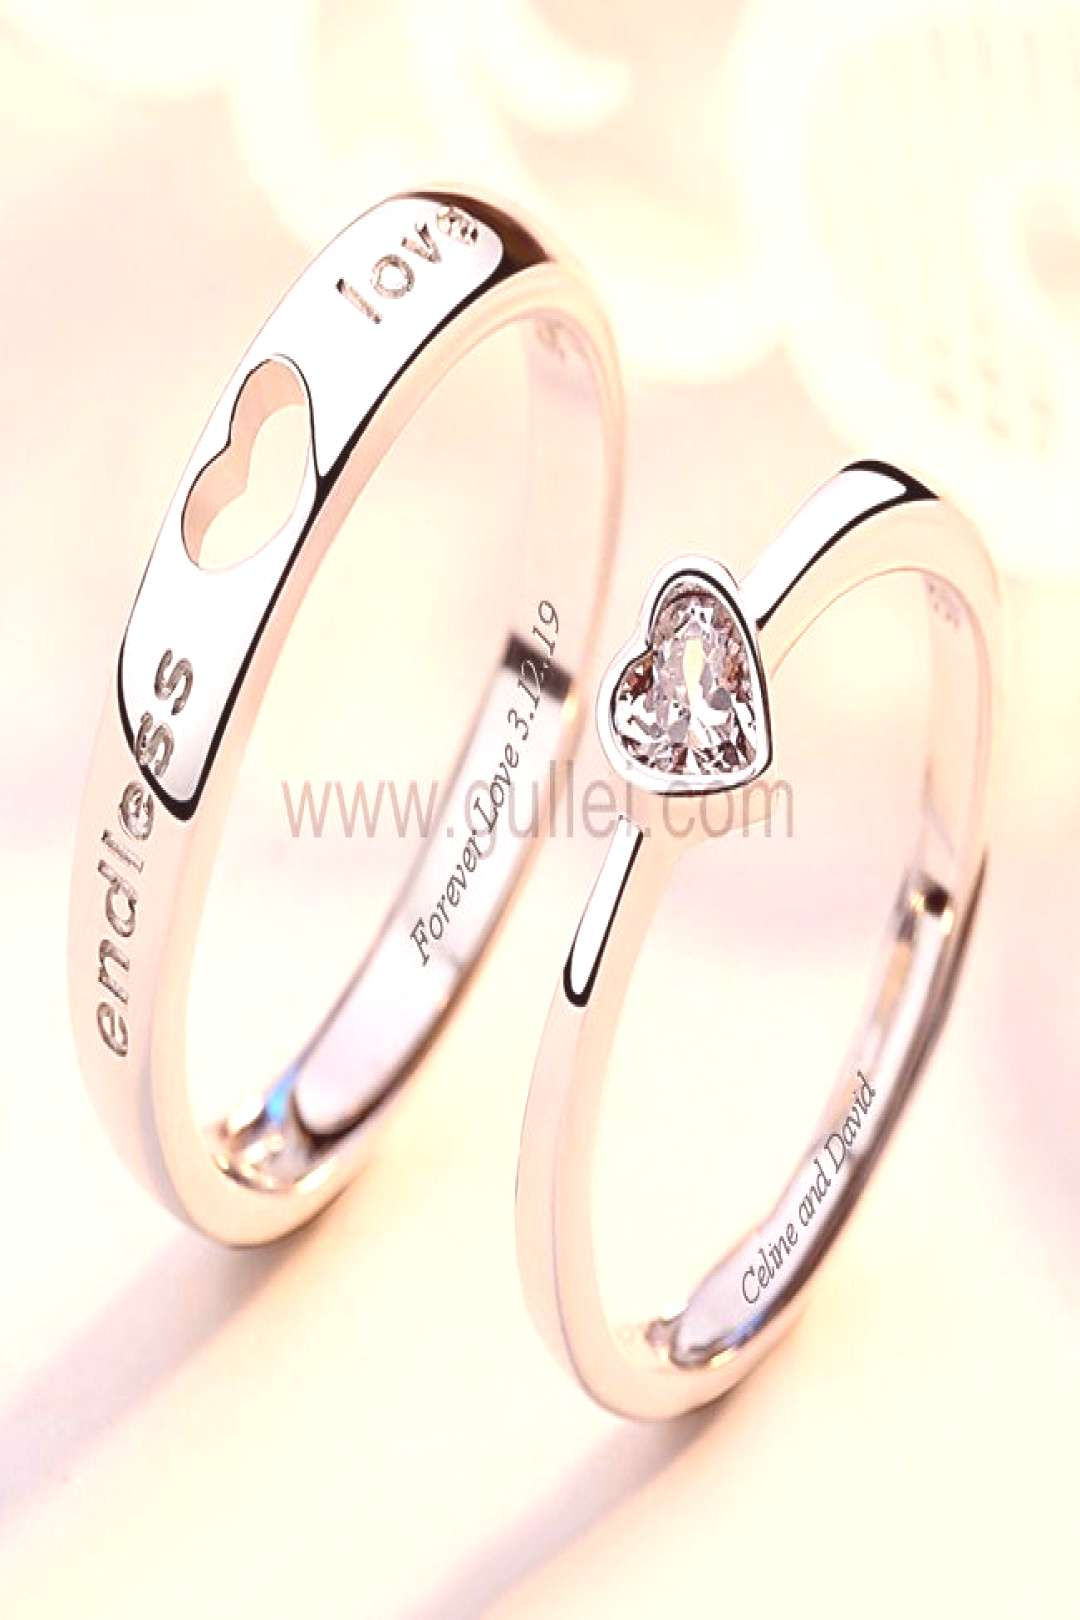 Endless Love Engagement Rings for Couple (Adjustable Size)